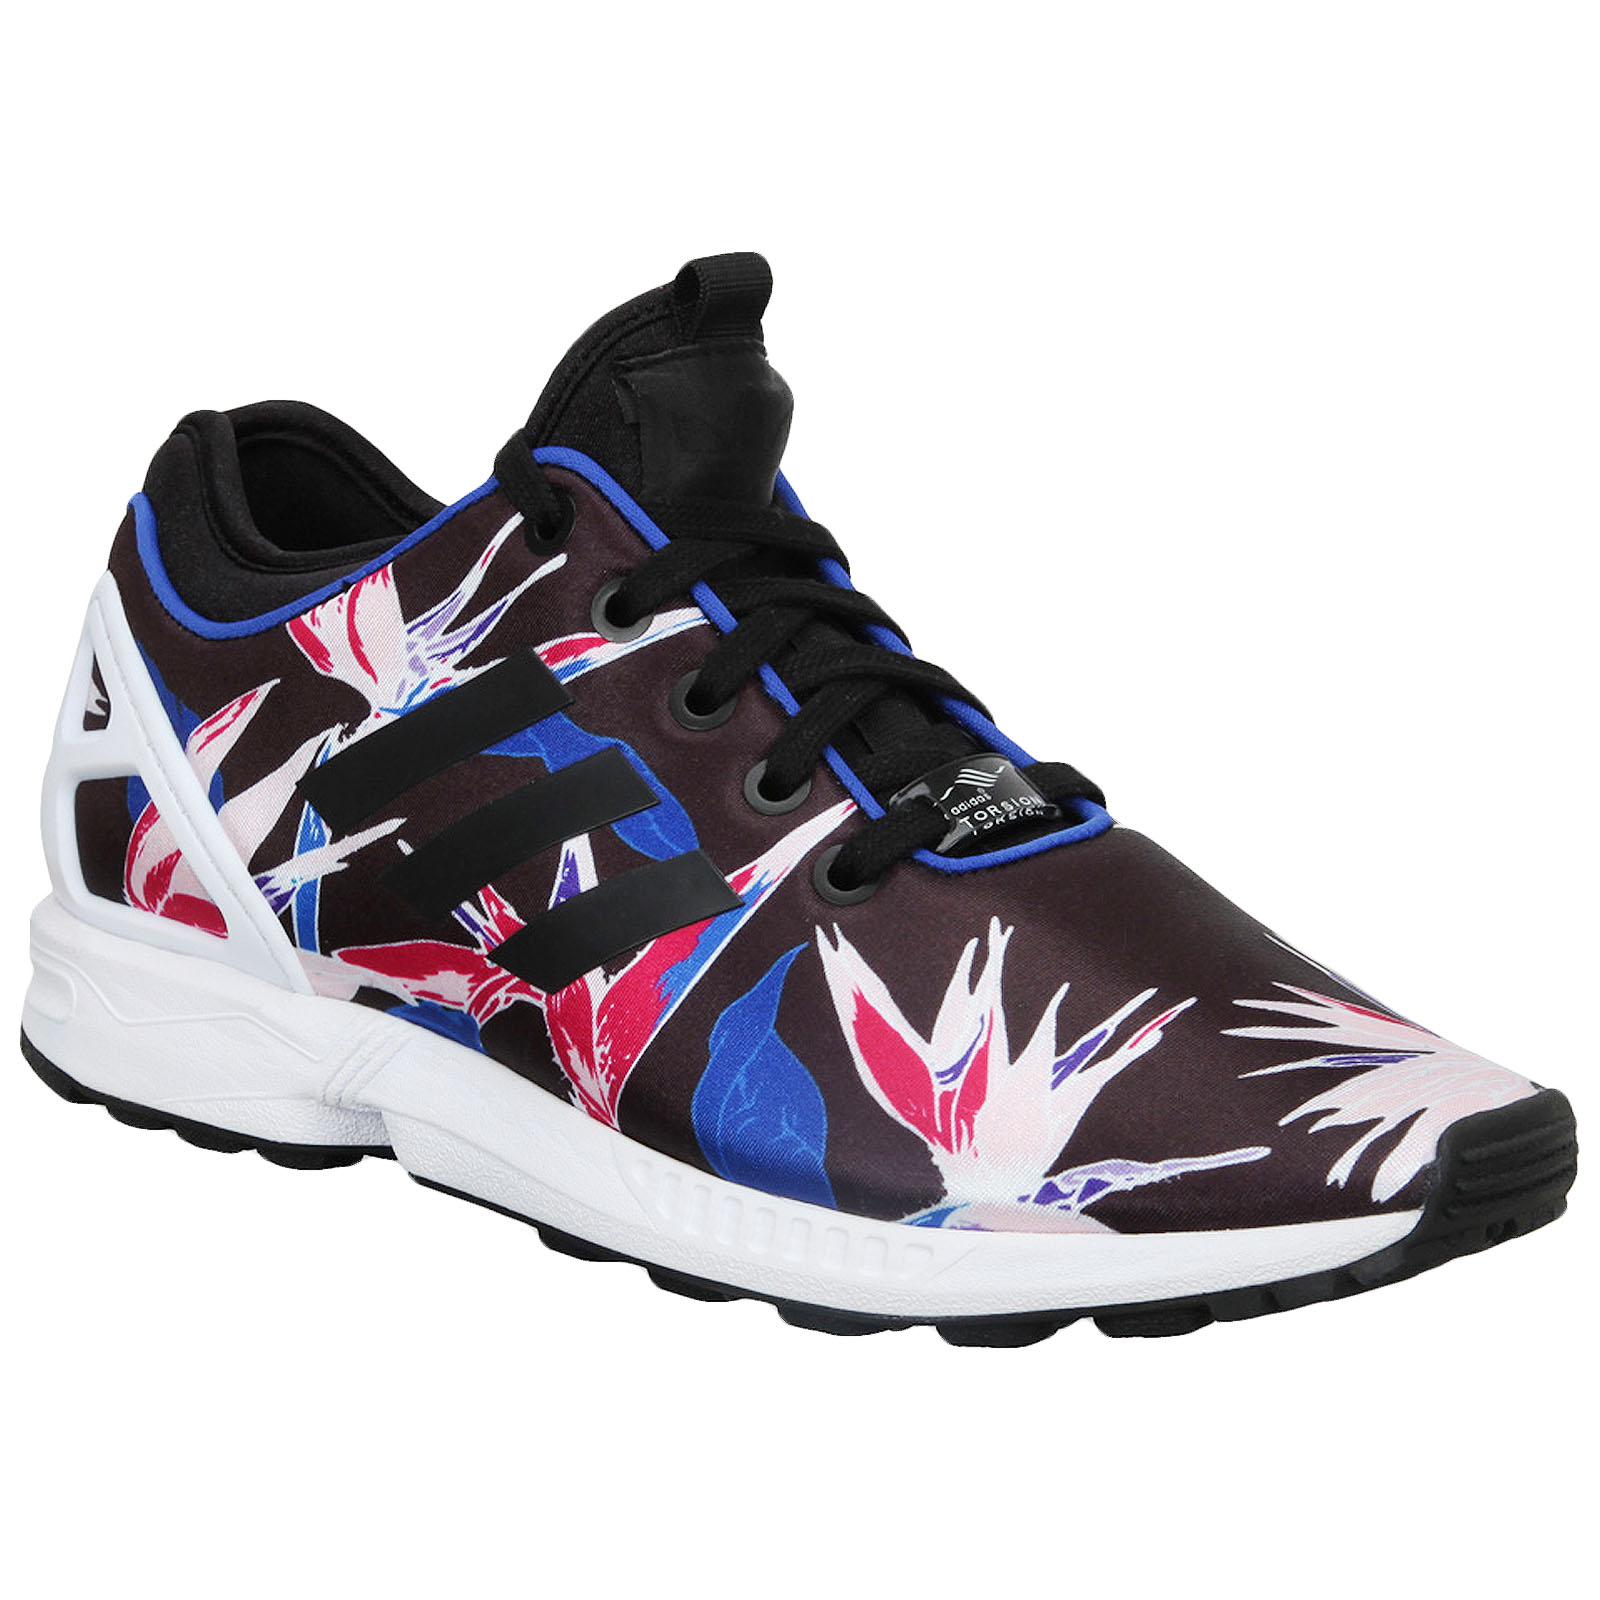 Details about adidas Originals Mens ZX Flux NPS Sports Shoes Trainers -  Floral bd5f2363d7